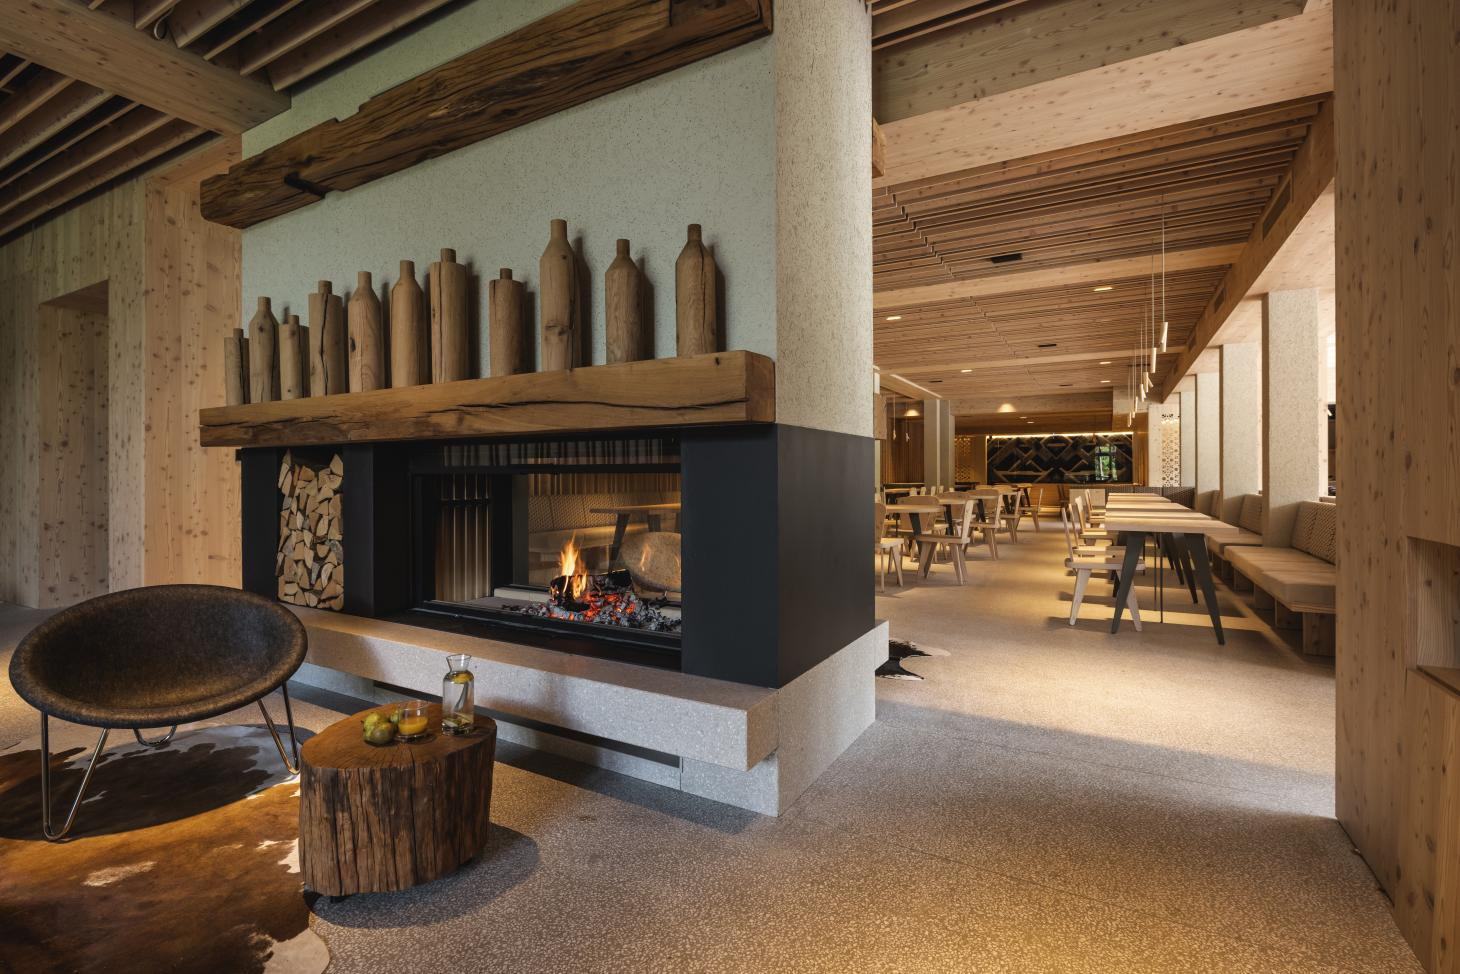 cosy interiors and lots of timber create a warm atmosphere in this hotel in Slovenia